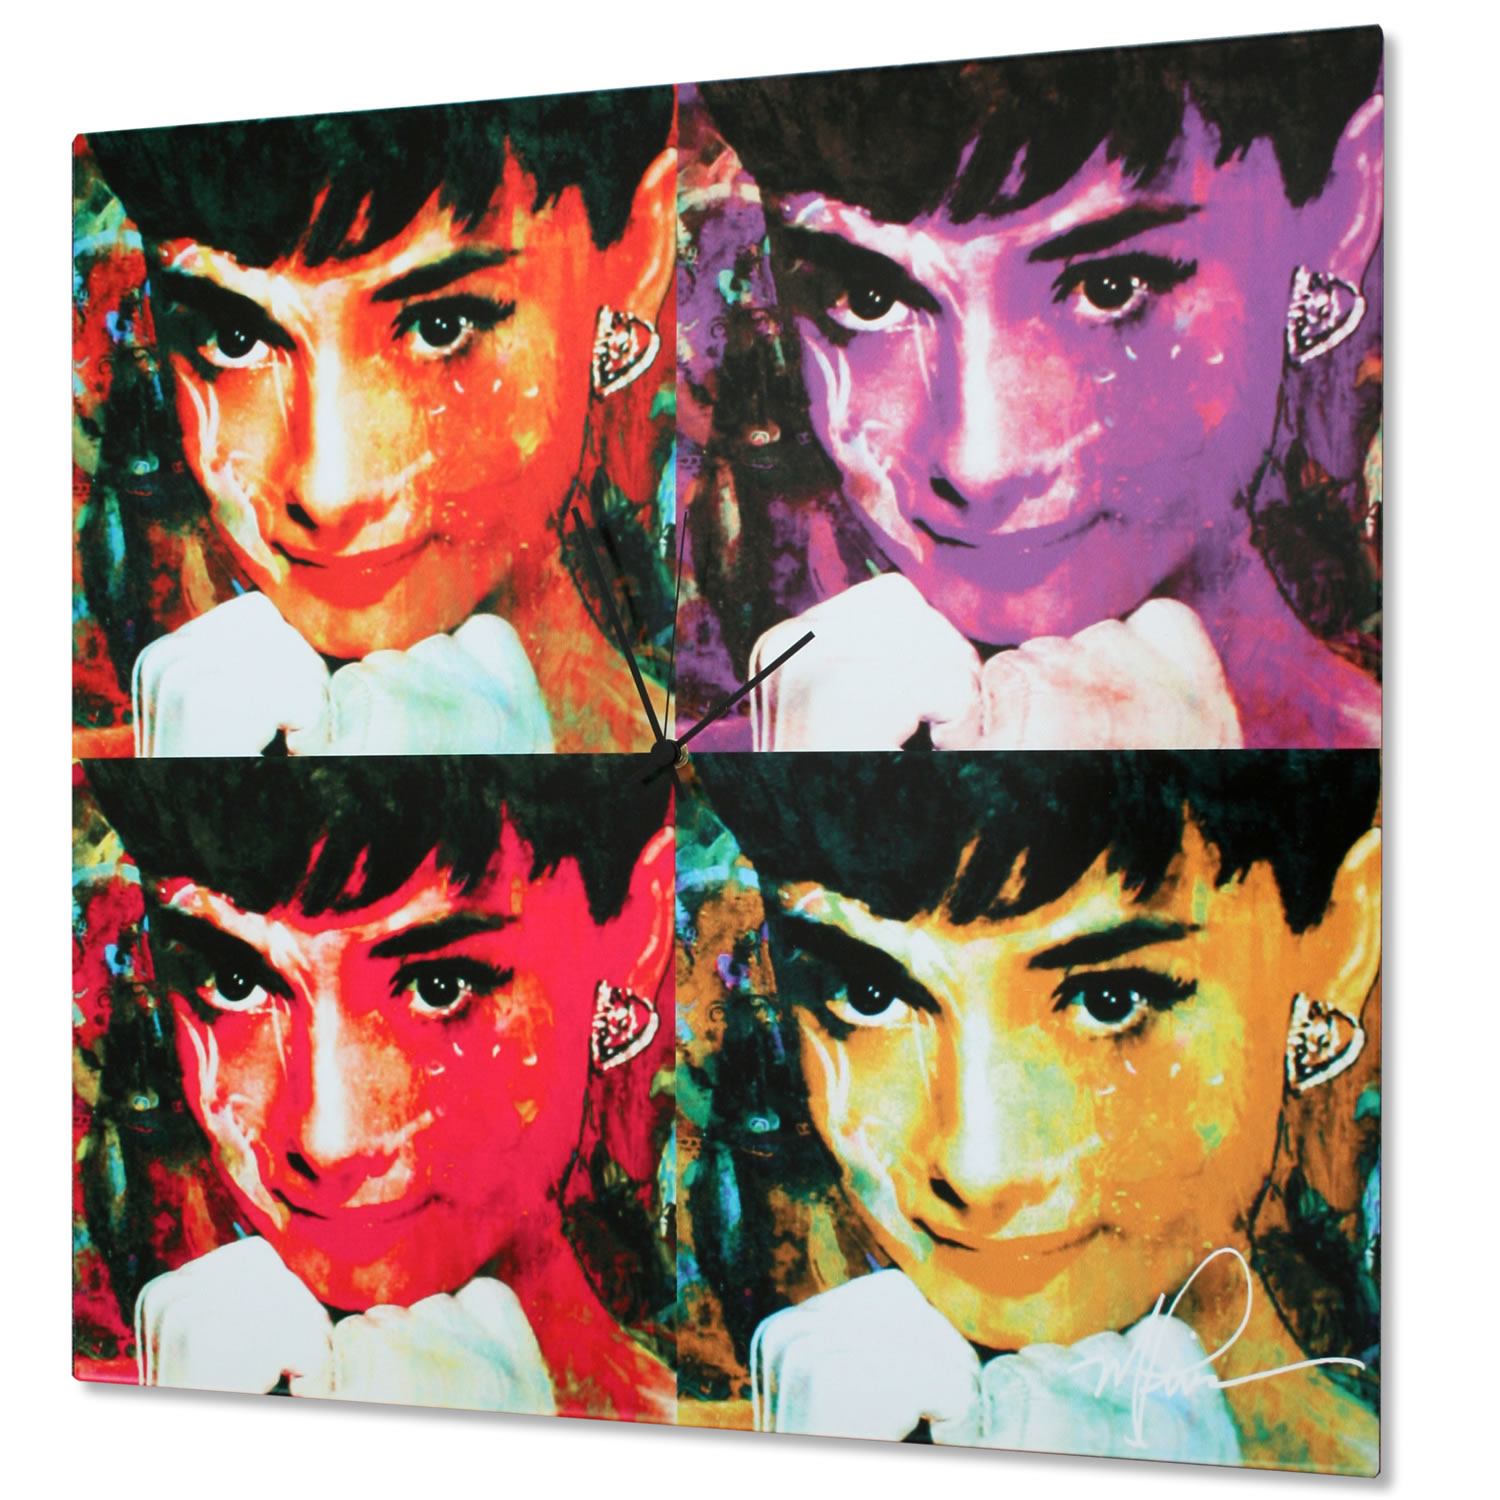 Audrey Hepburn - Pop Art Painting by Mark Lewis, giclee Print on Metal